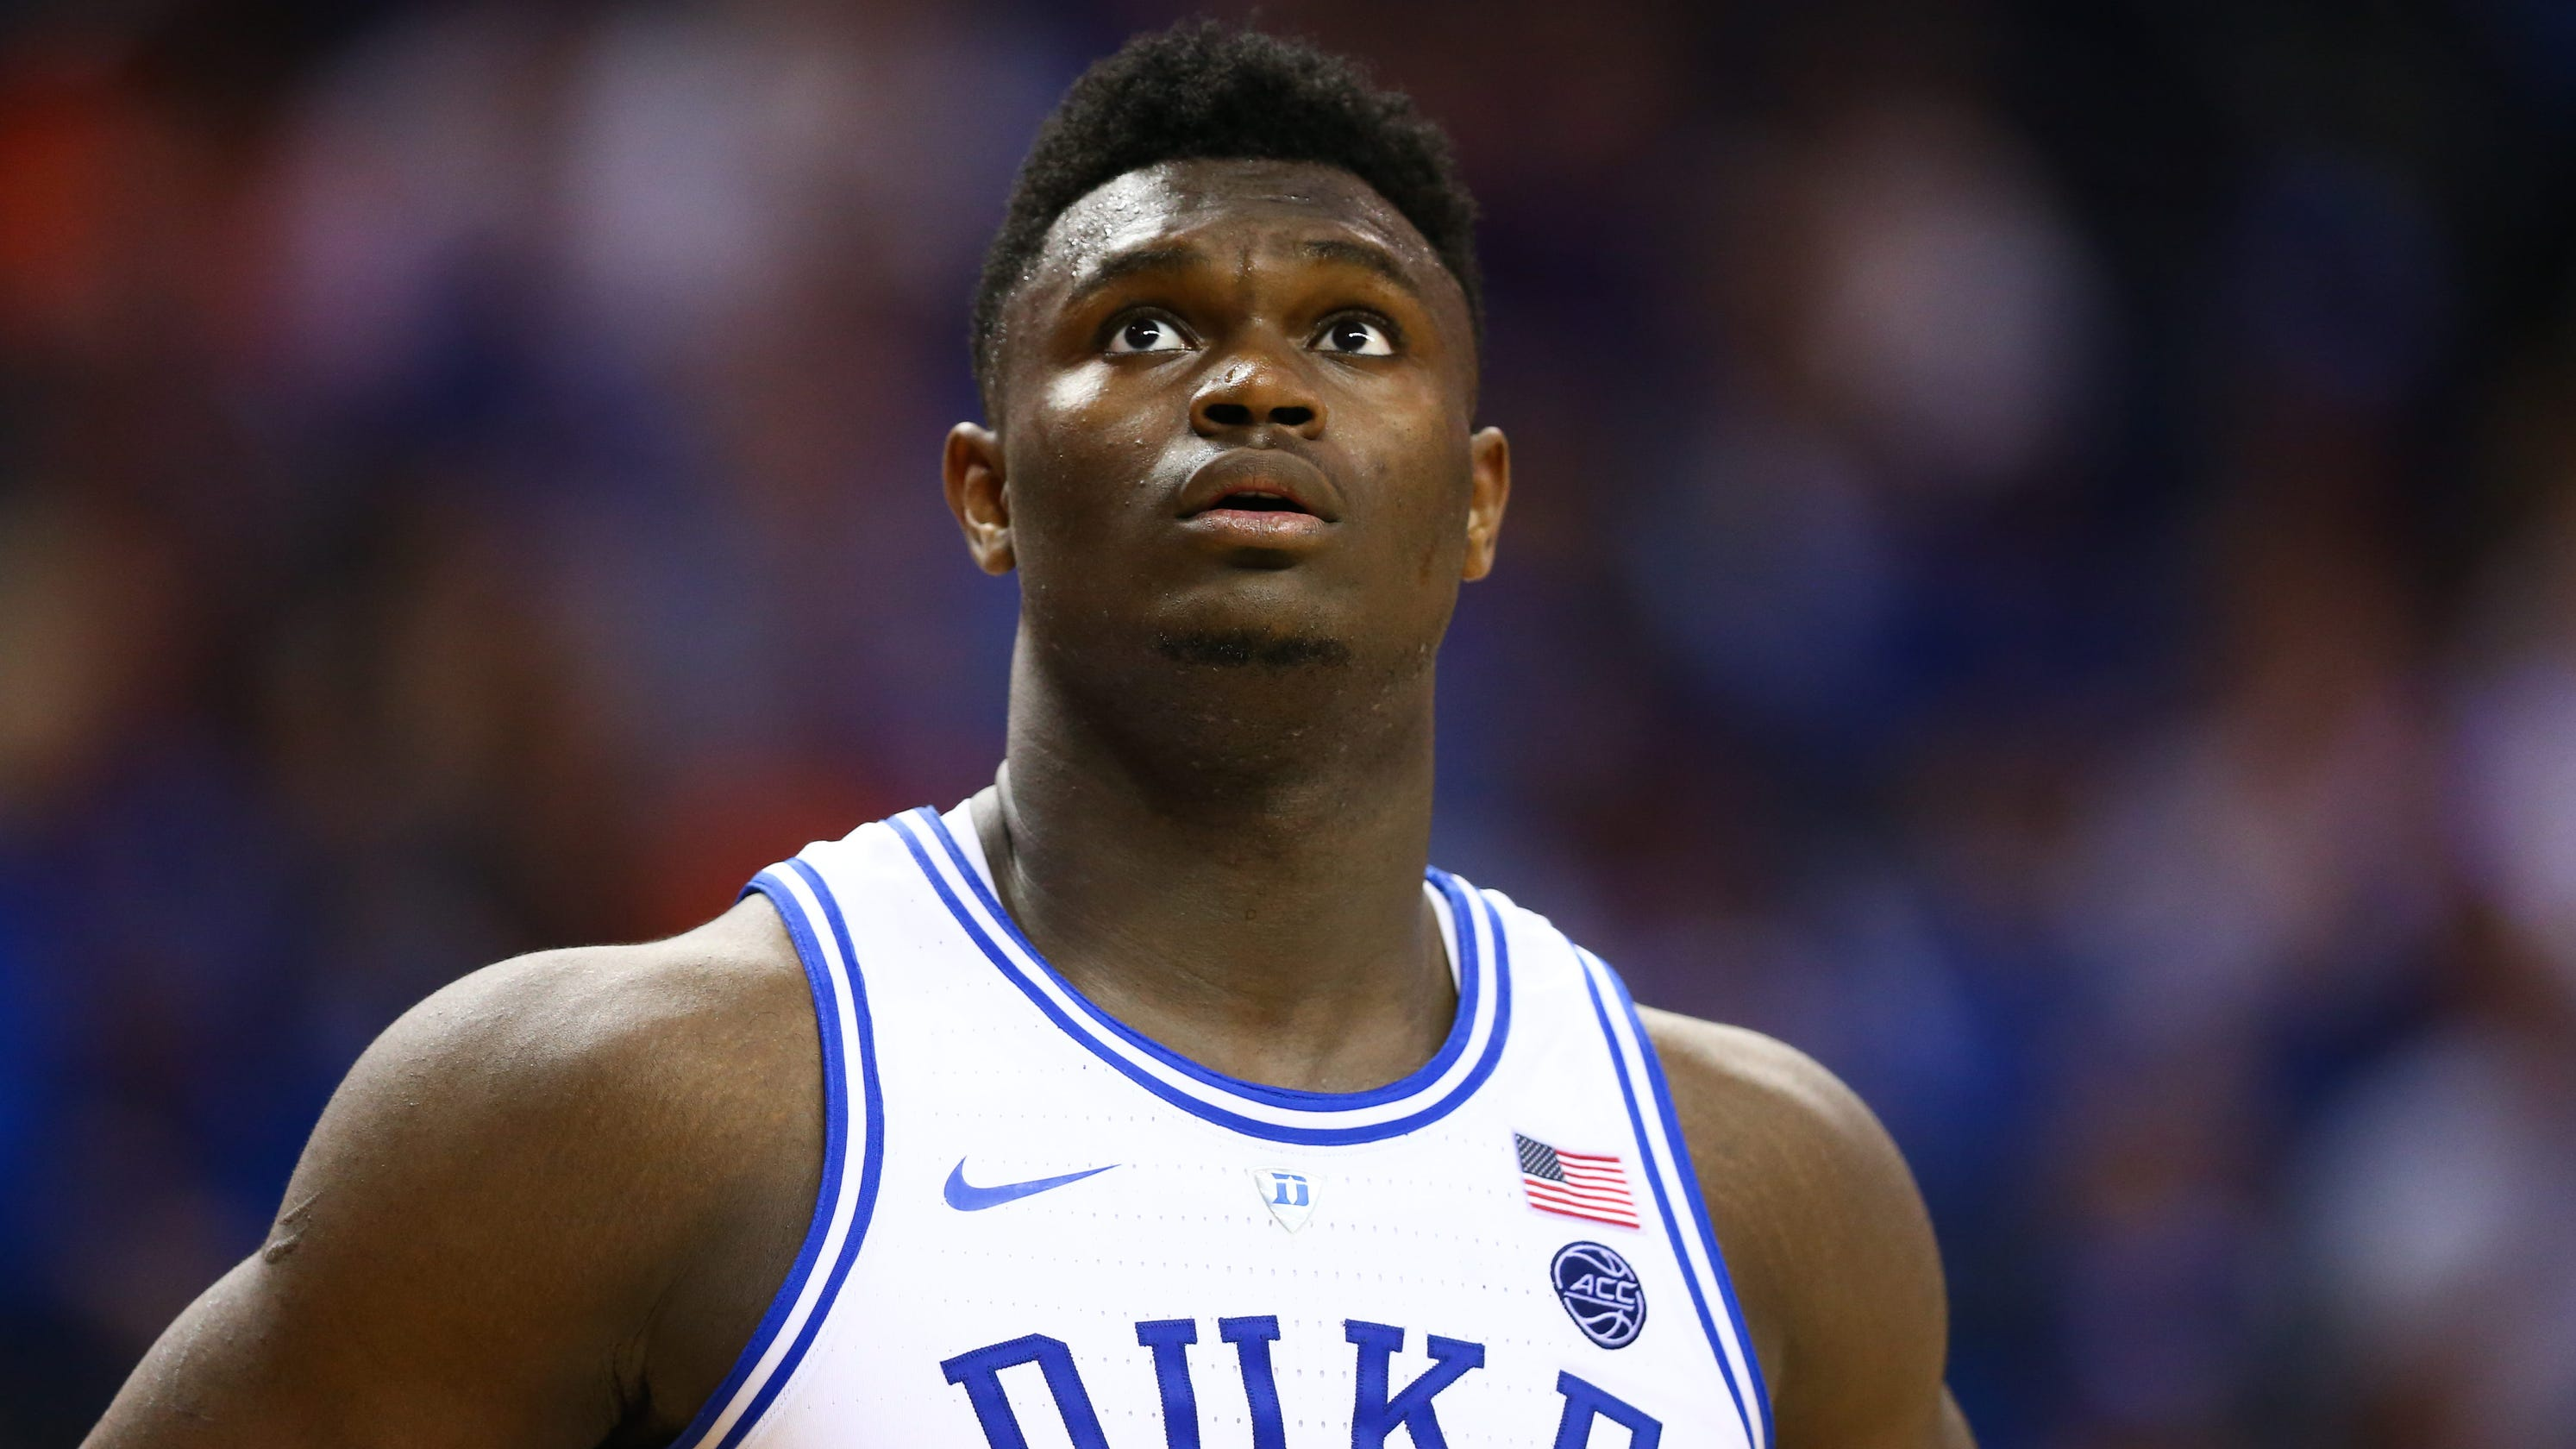 Ranking the best and worst NBA fits for Zion Williamson